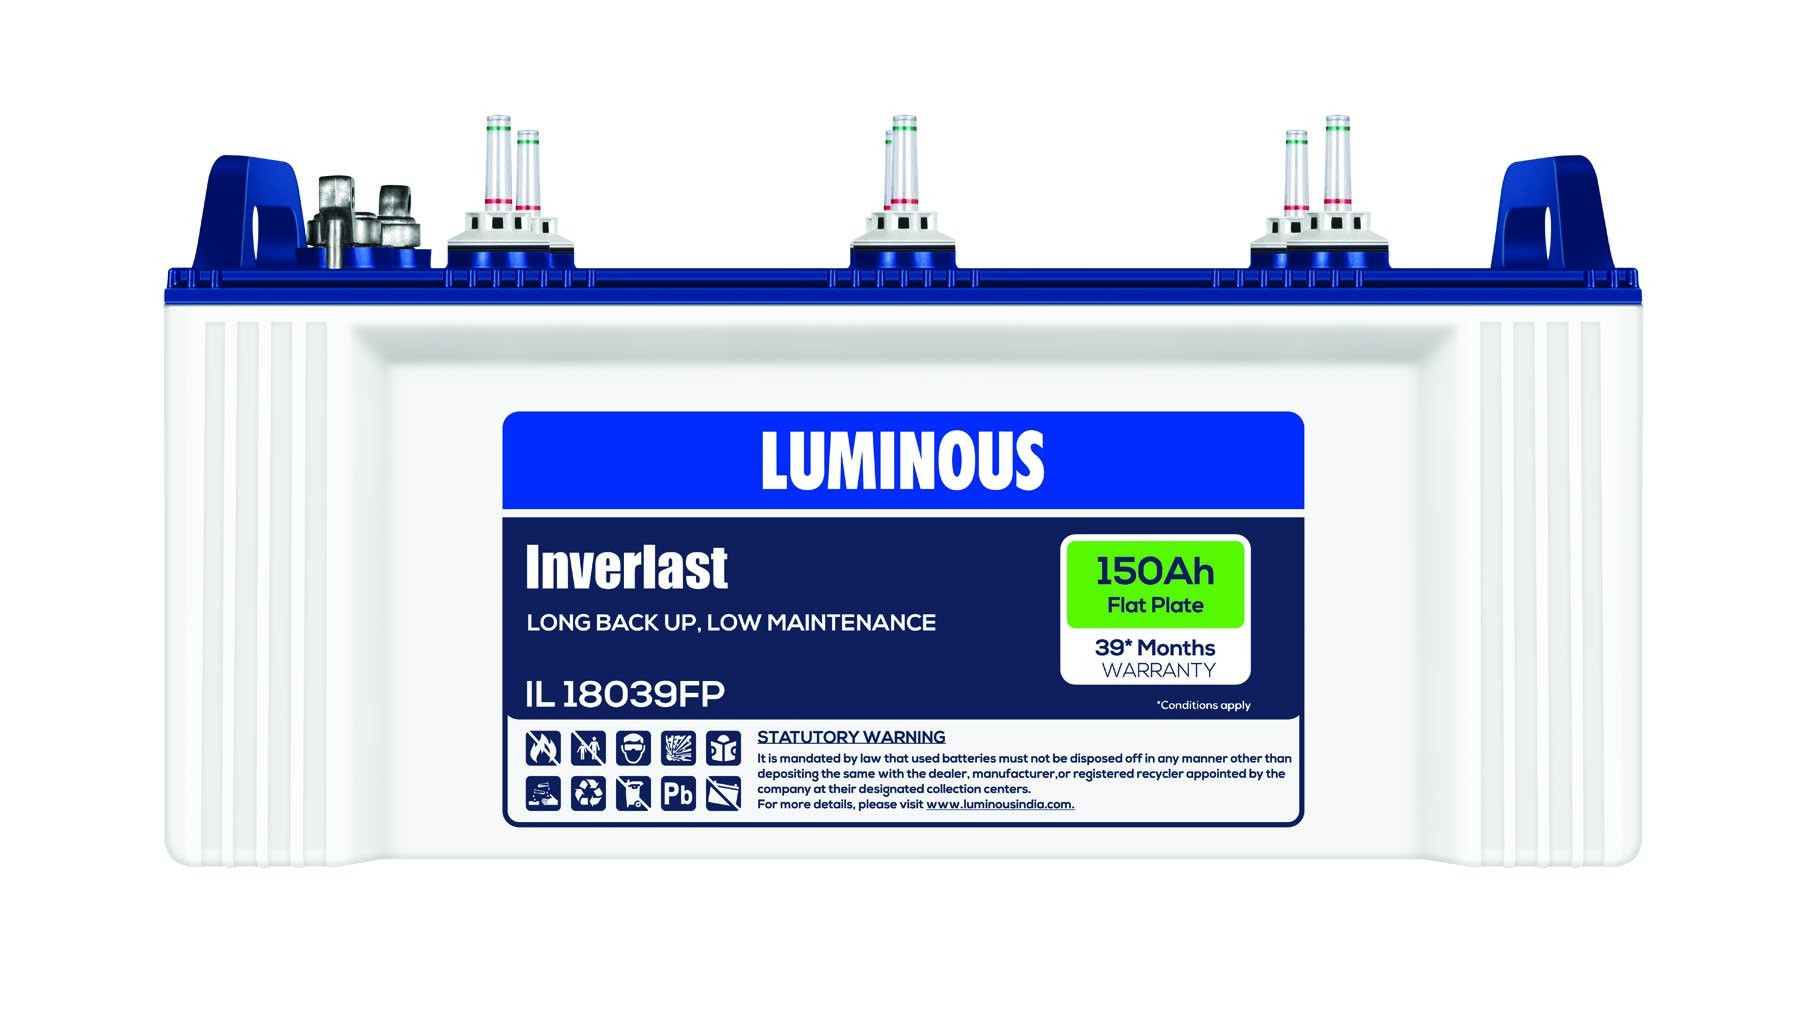 Luminous INVERLAST 18039 Neo 150AH Flatplate Battery